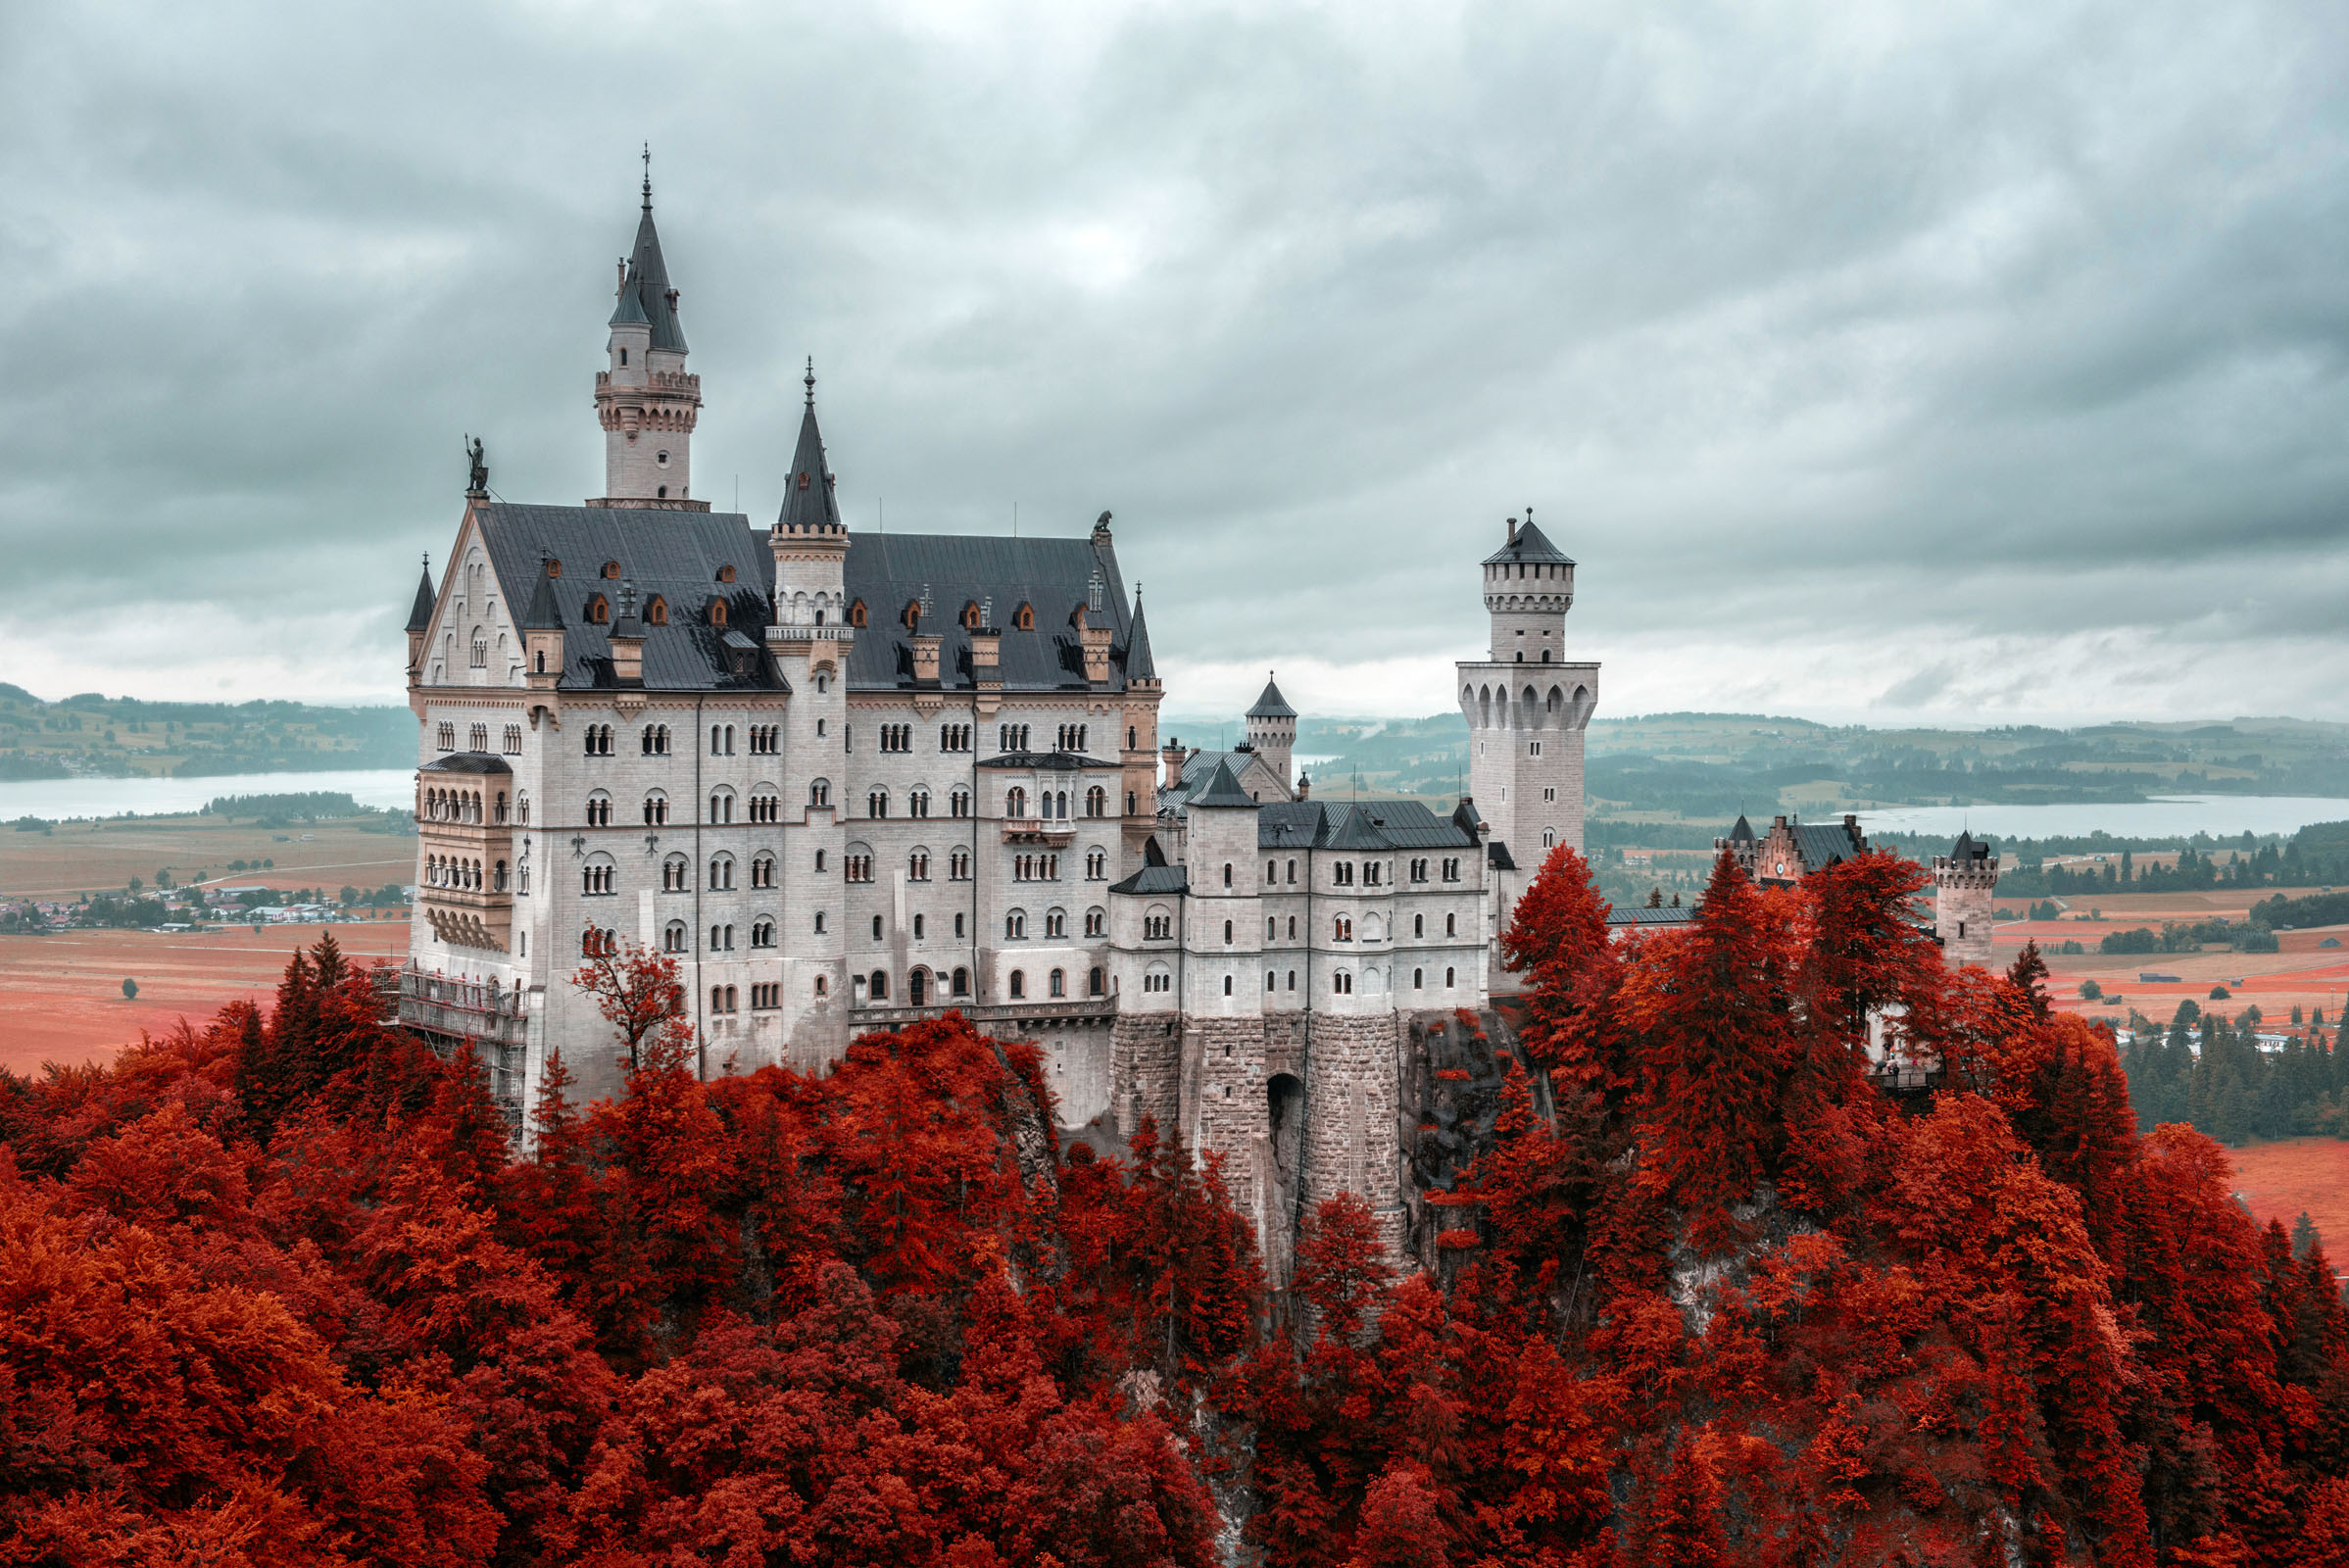 Neuschwanstein Castle in Schwangau, Germany